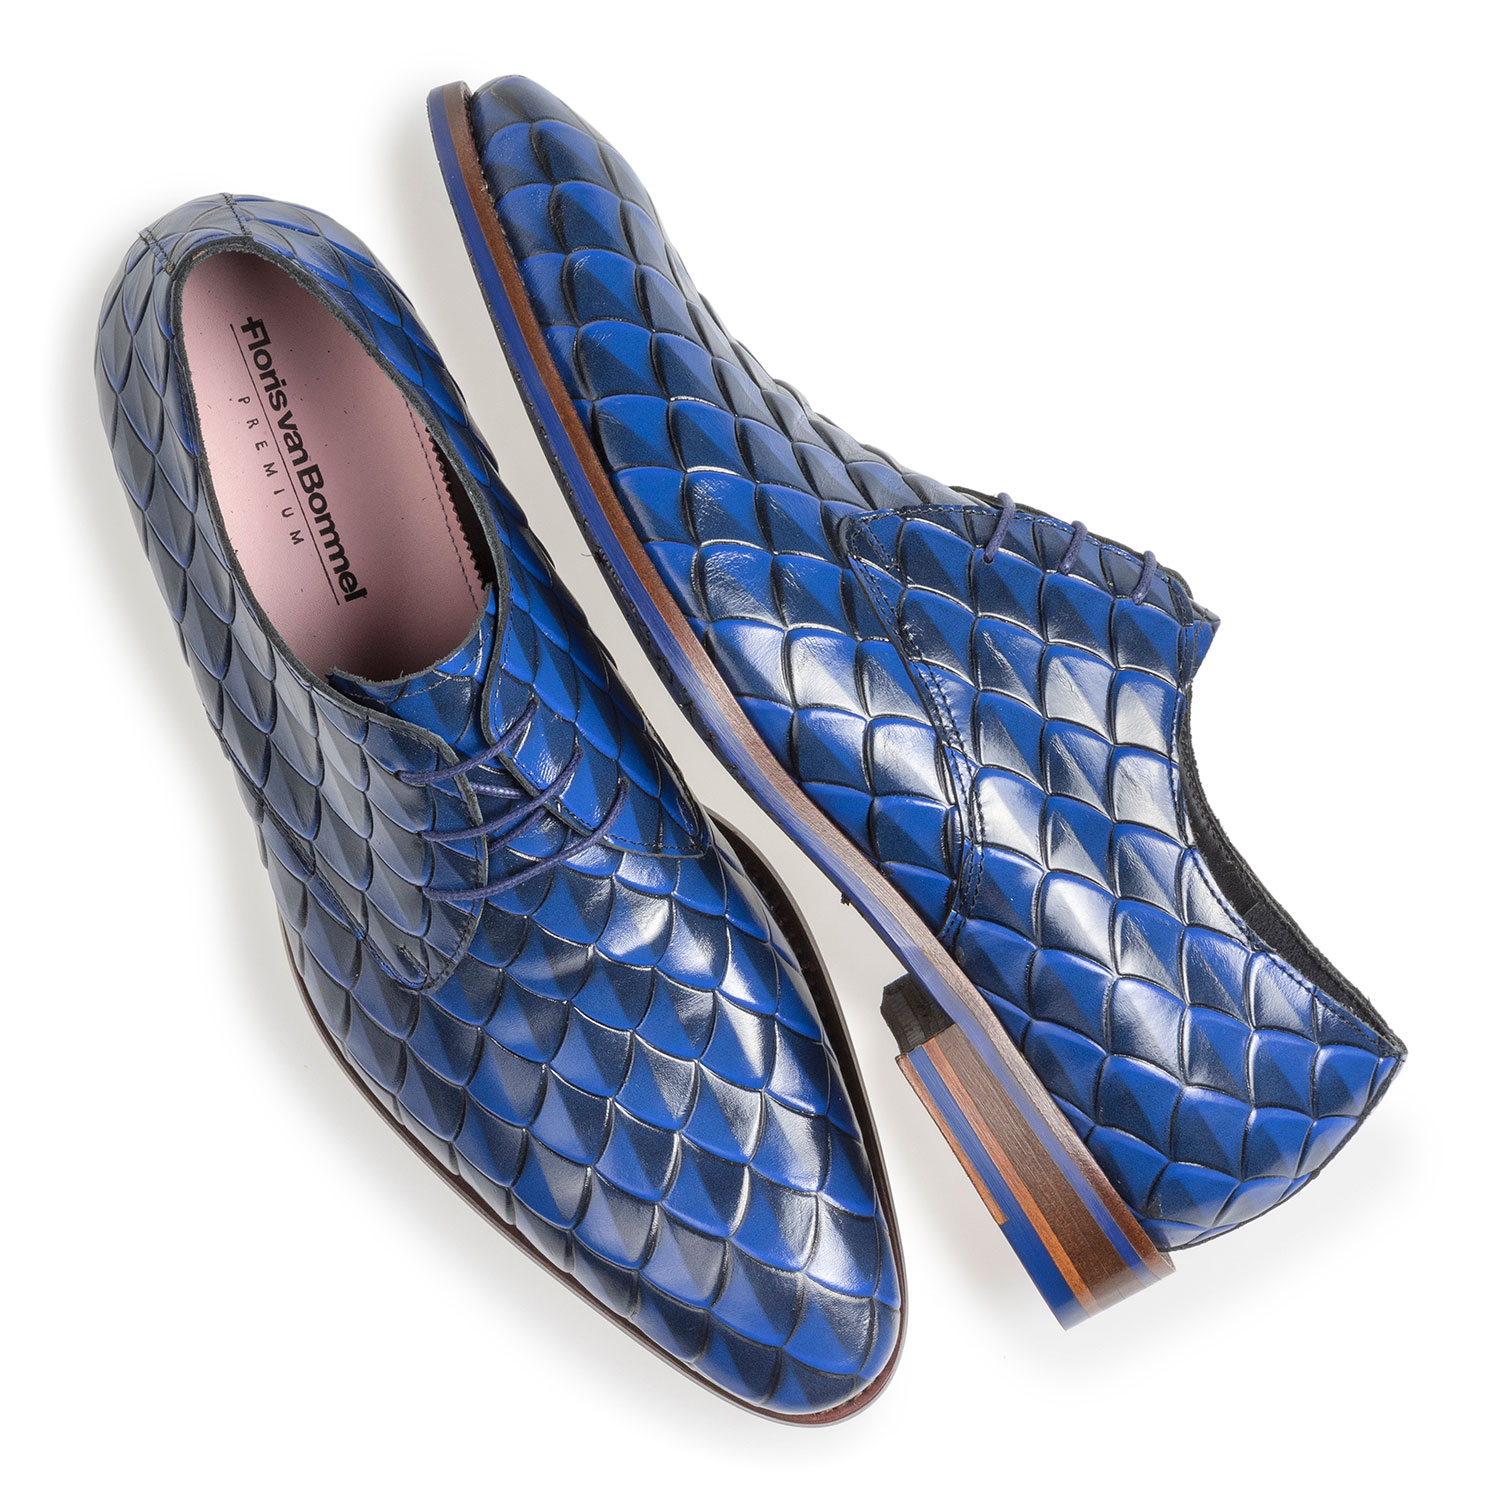 18167/03 - Premium blue leather lace shoe with print